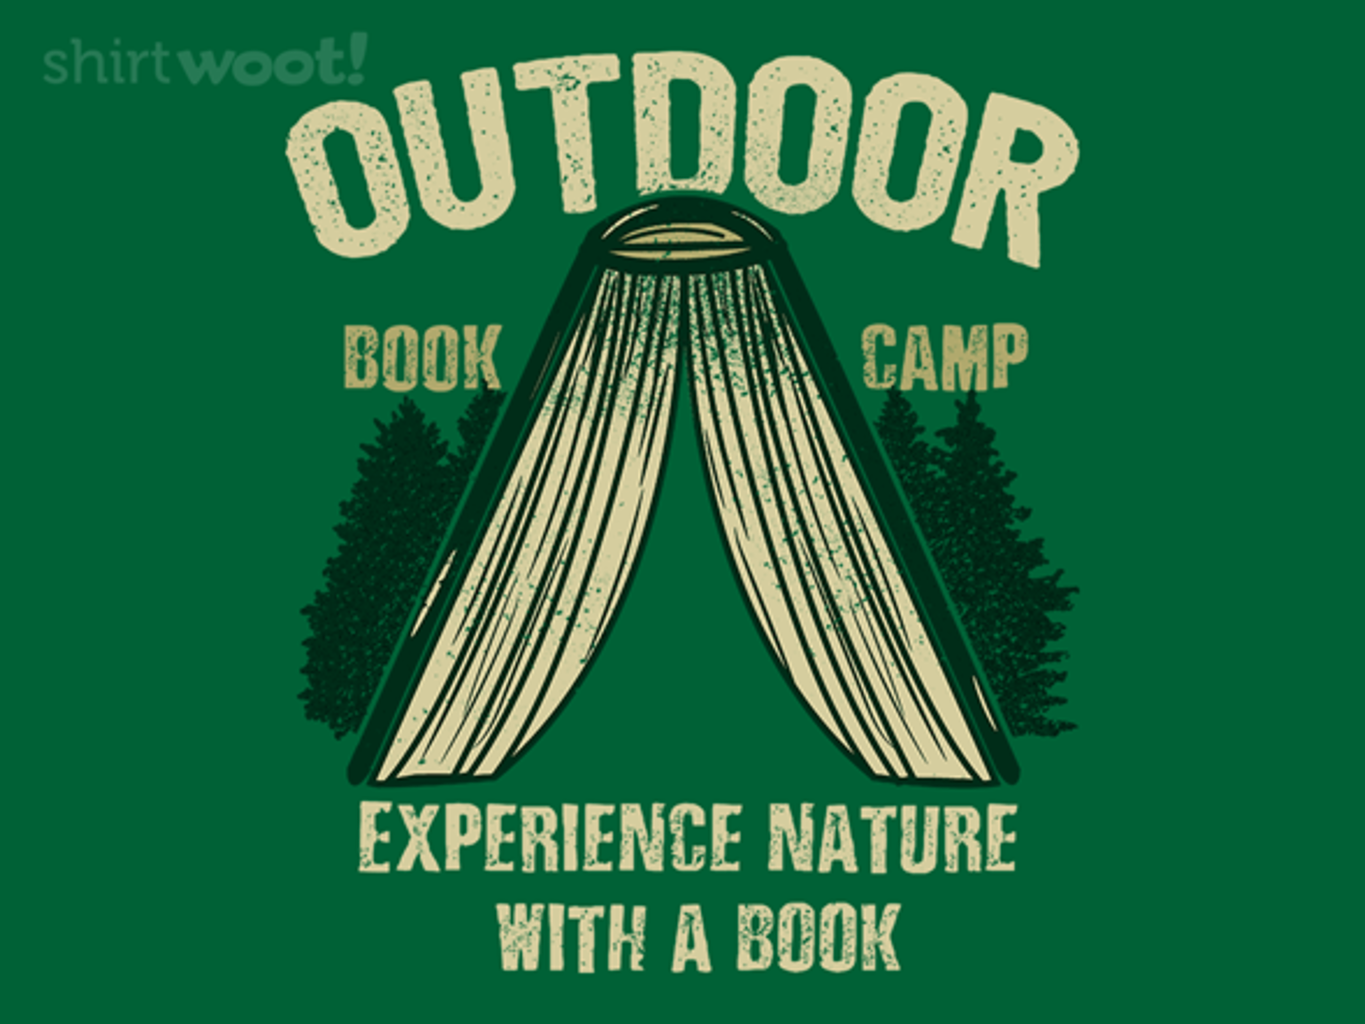 Woot!: Outdoor Book Camp